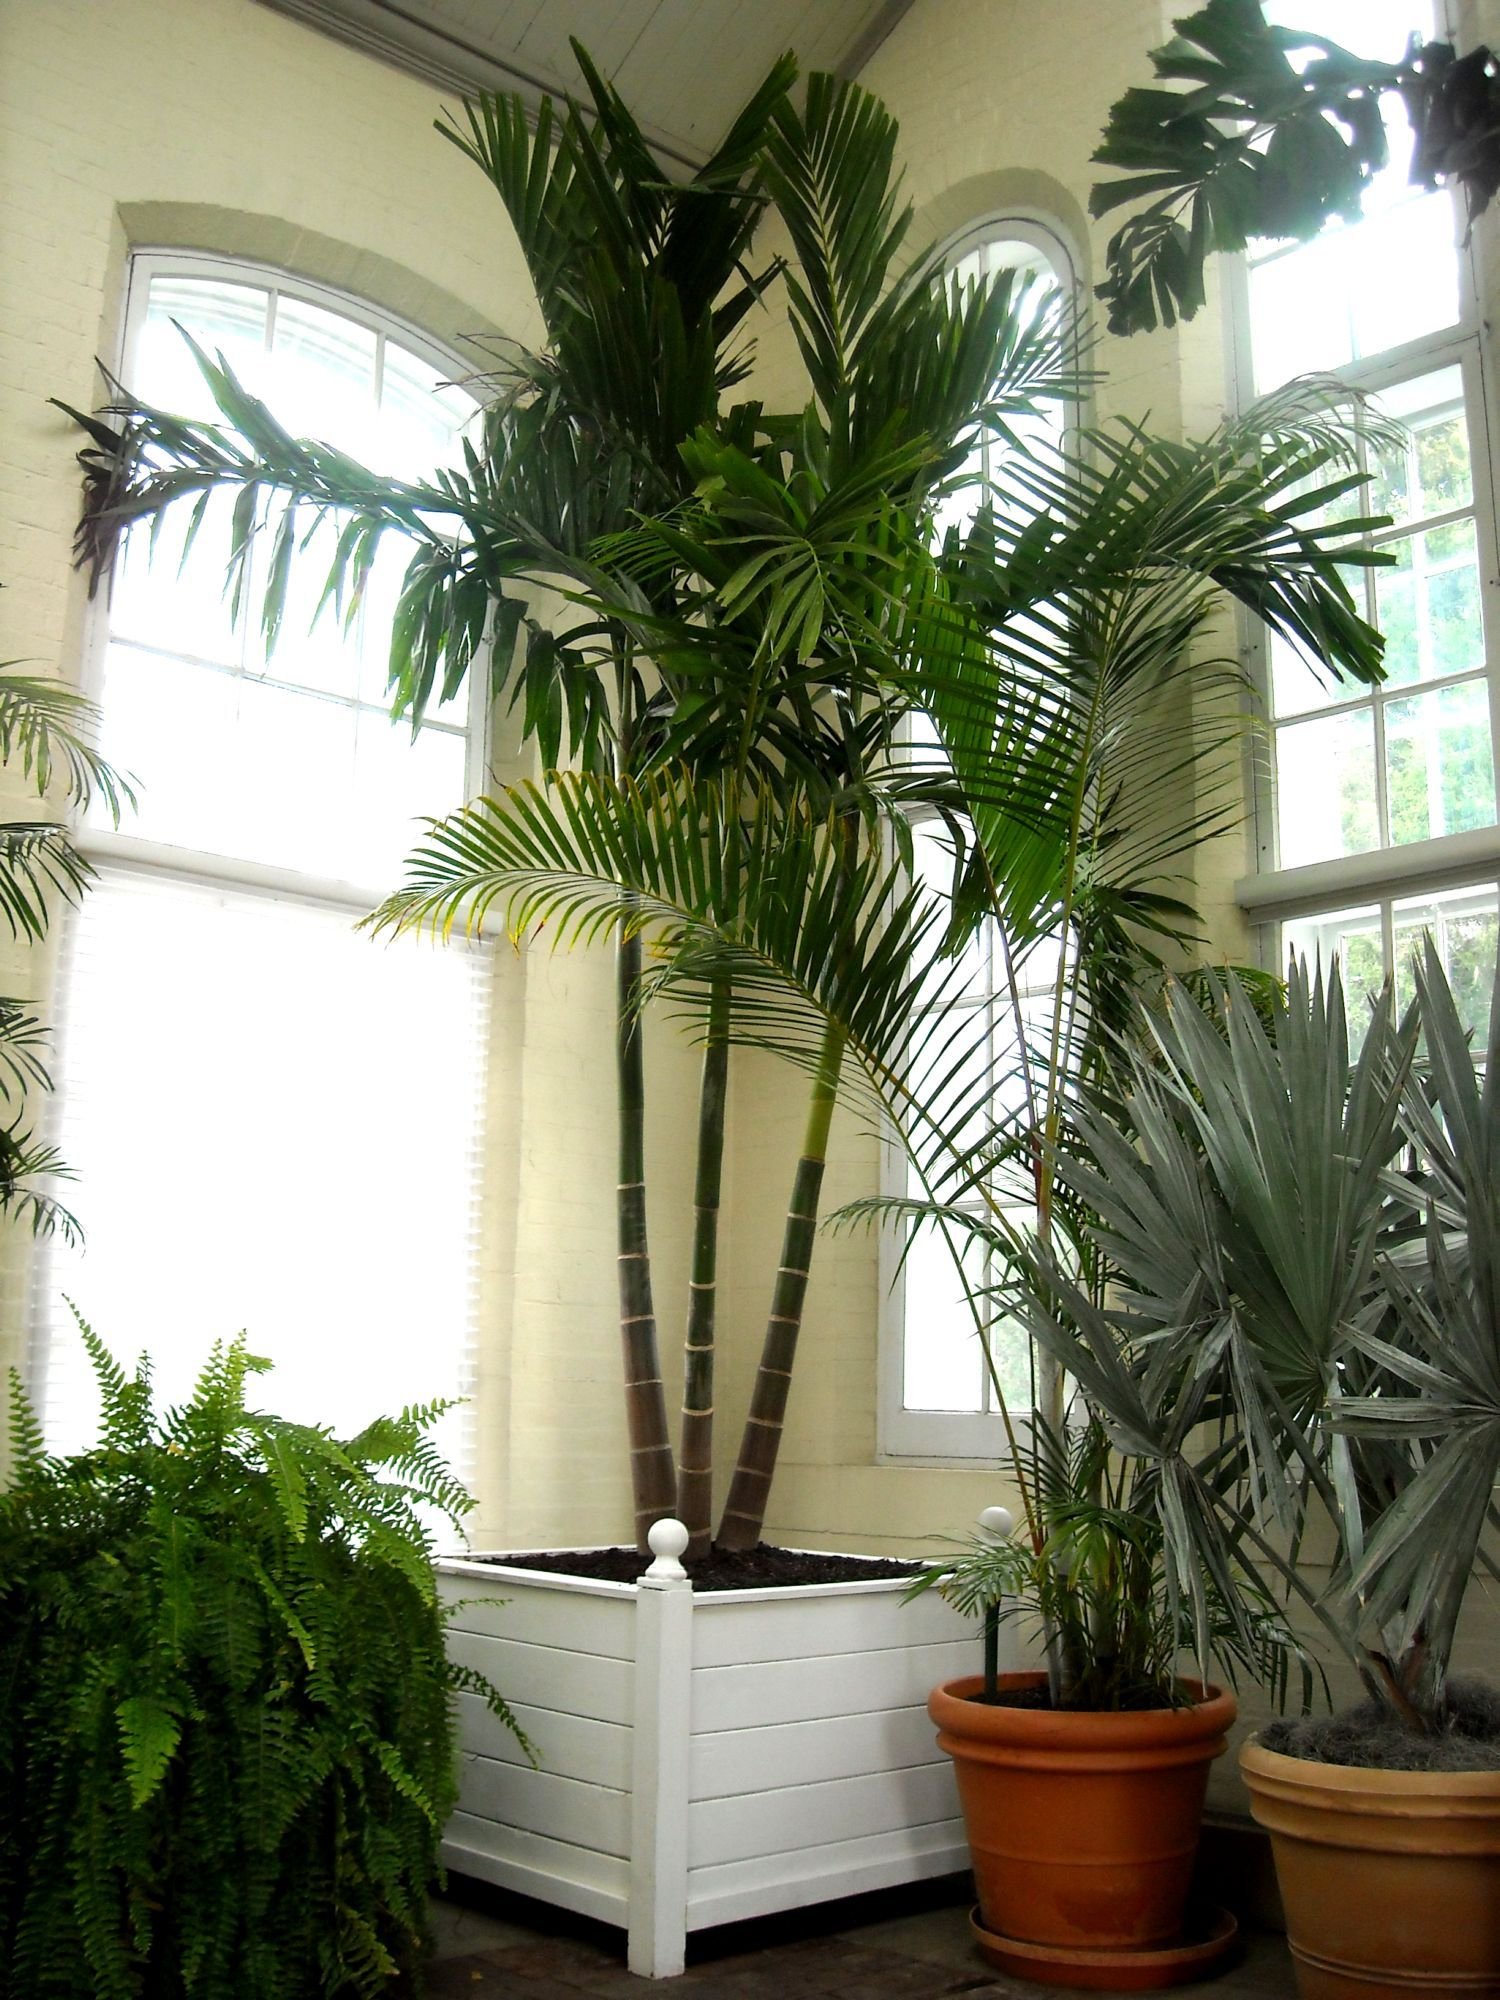 Best Kitchen Gallery: Indoor Palms Buy Real Palm Trees Like This By Visiting Our Website of Tropical Tree House Plant Names on rachelxblog.com